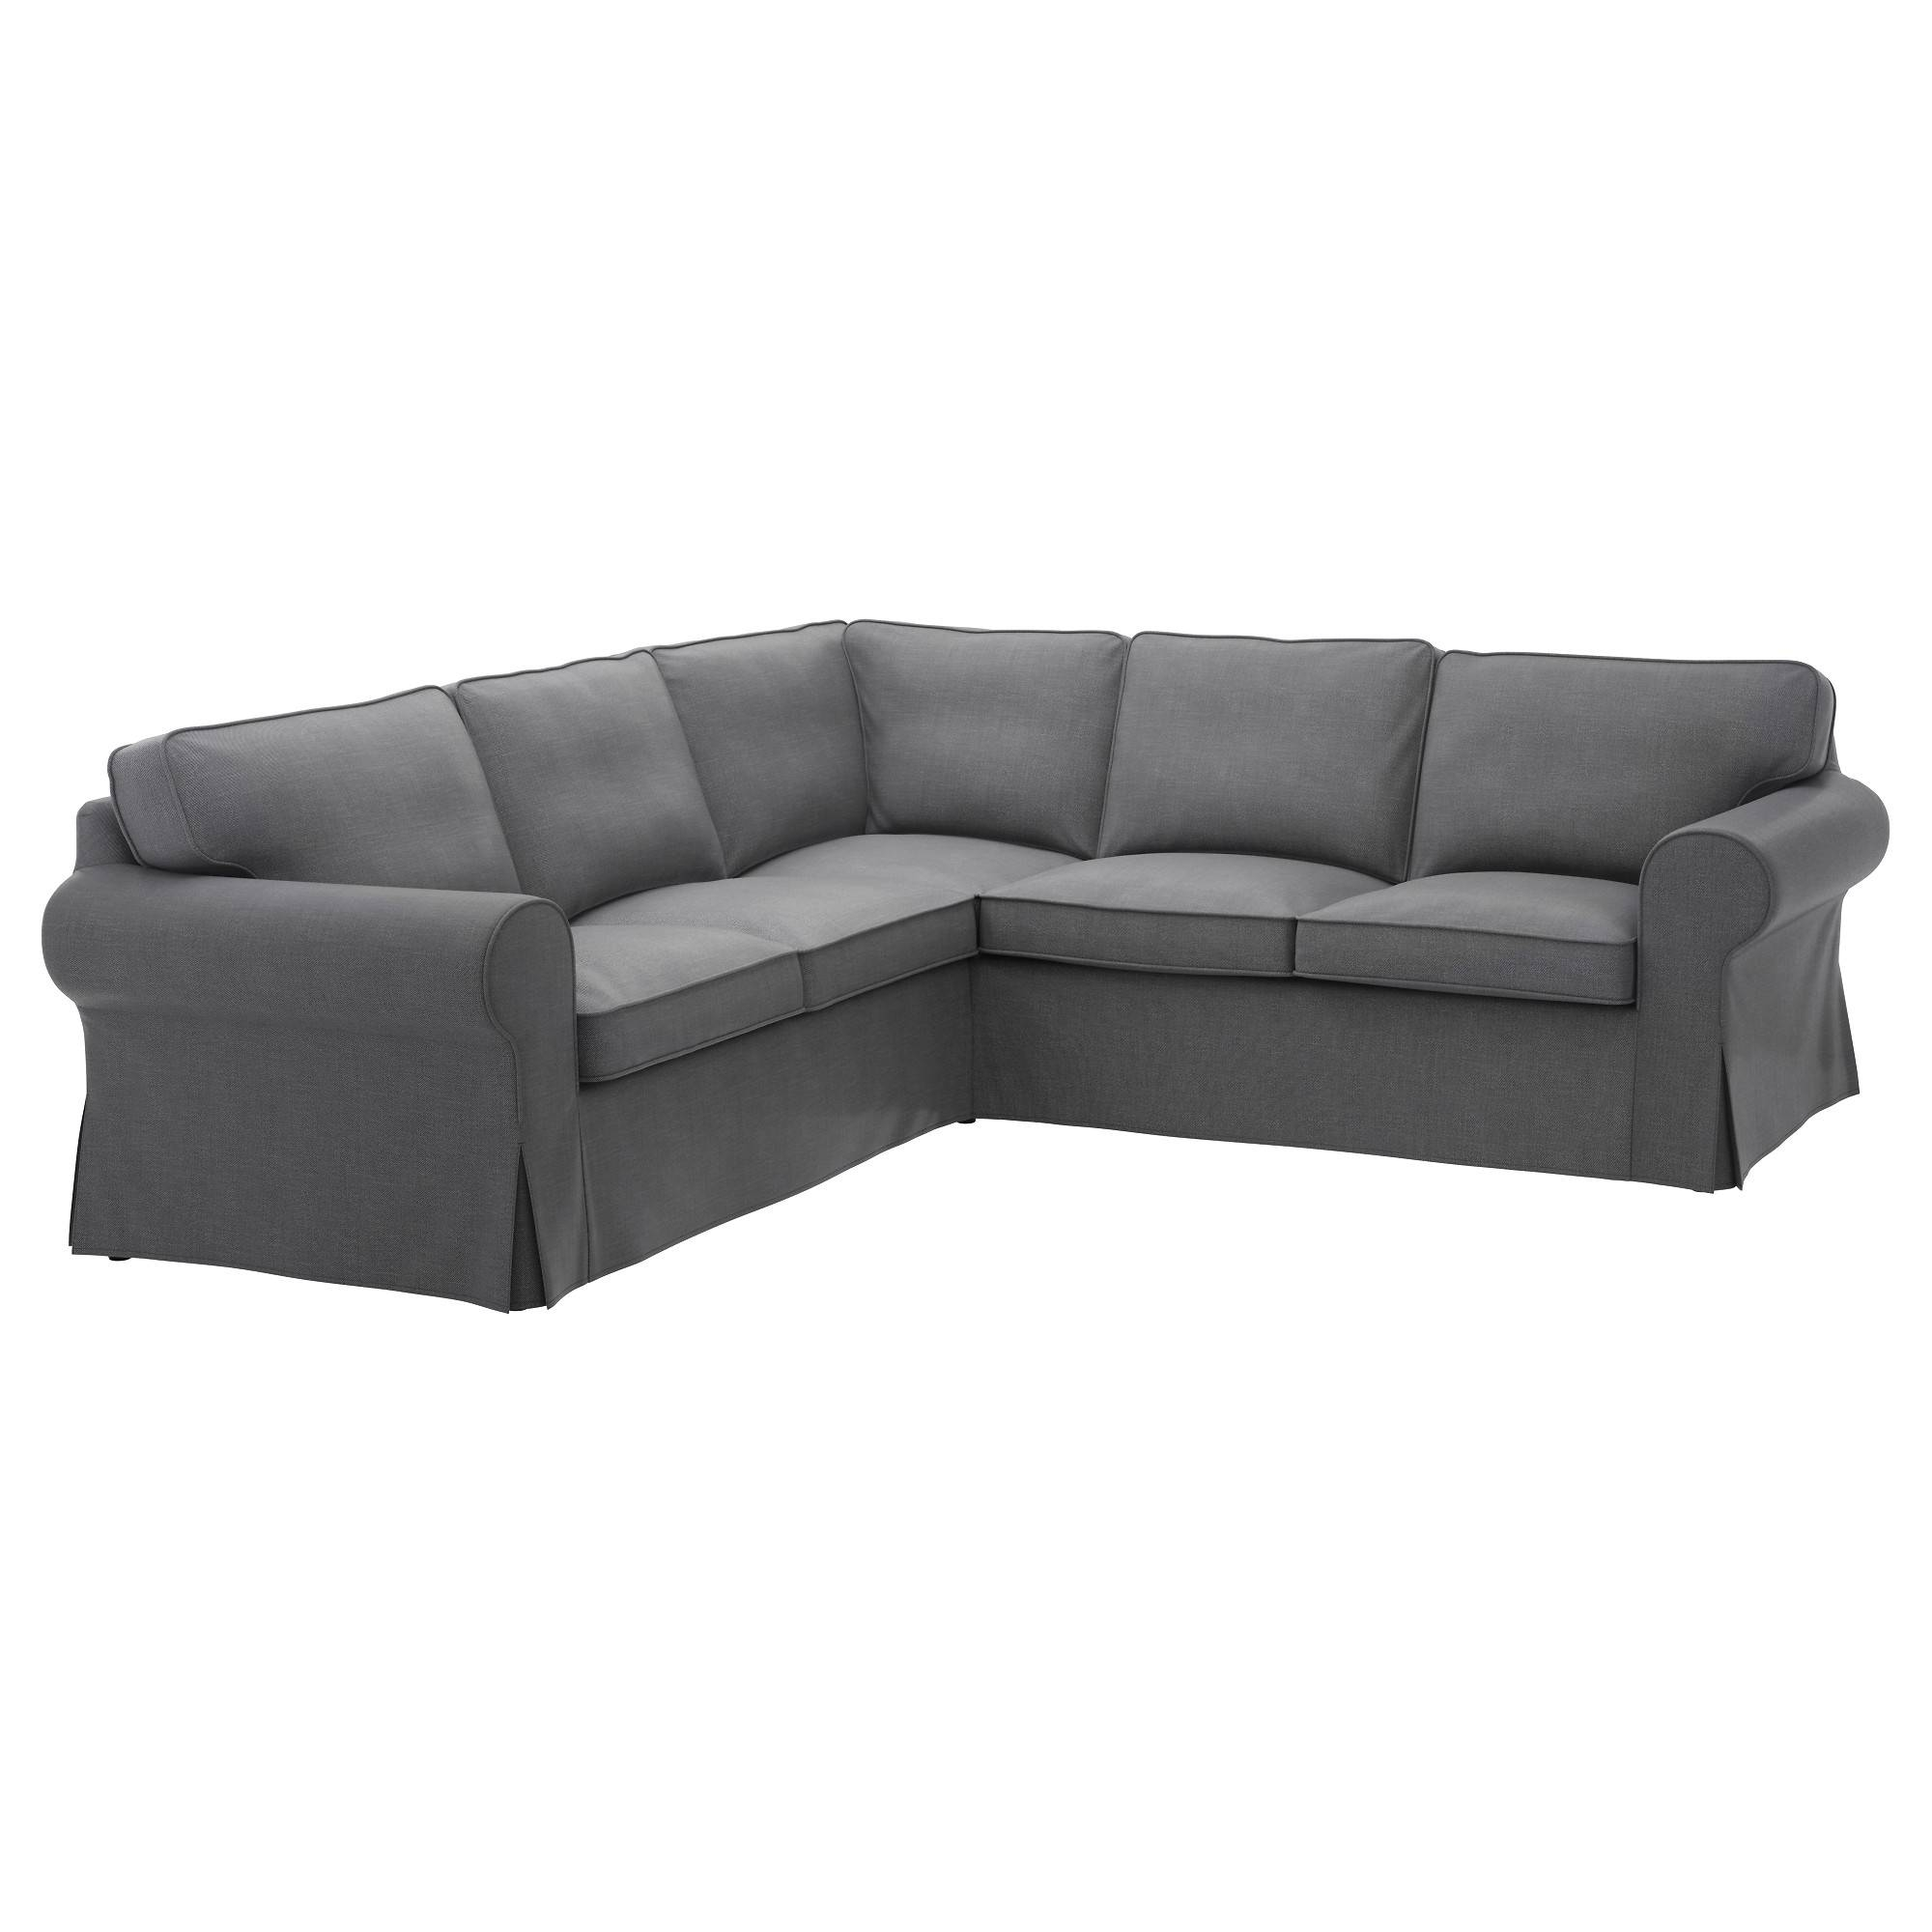 Fabric Sofas - Modern & Contemporary - Ikea for 4 Seater Couch (Image 12 of 30)